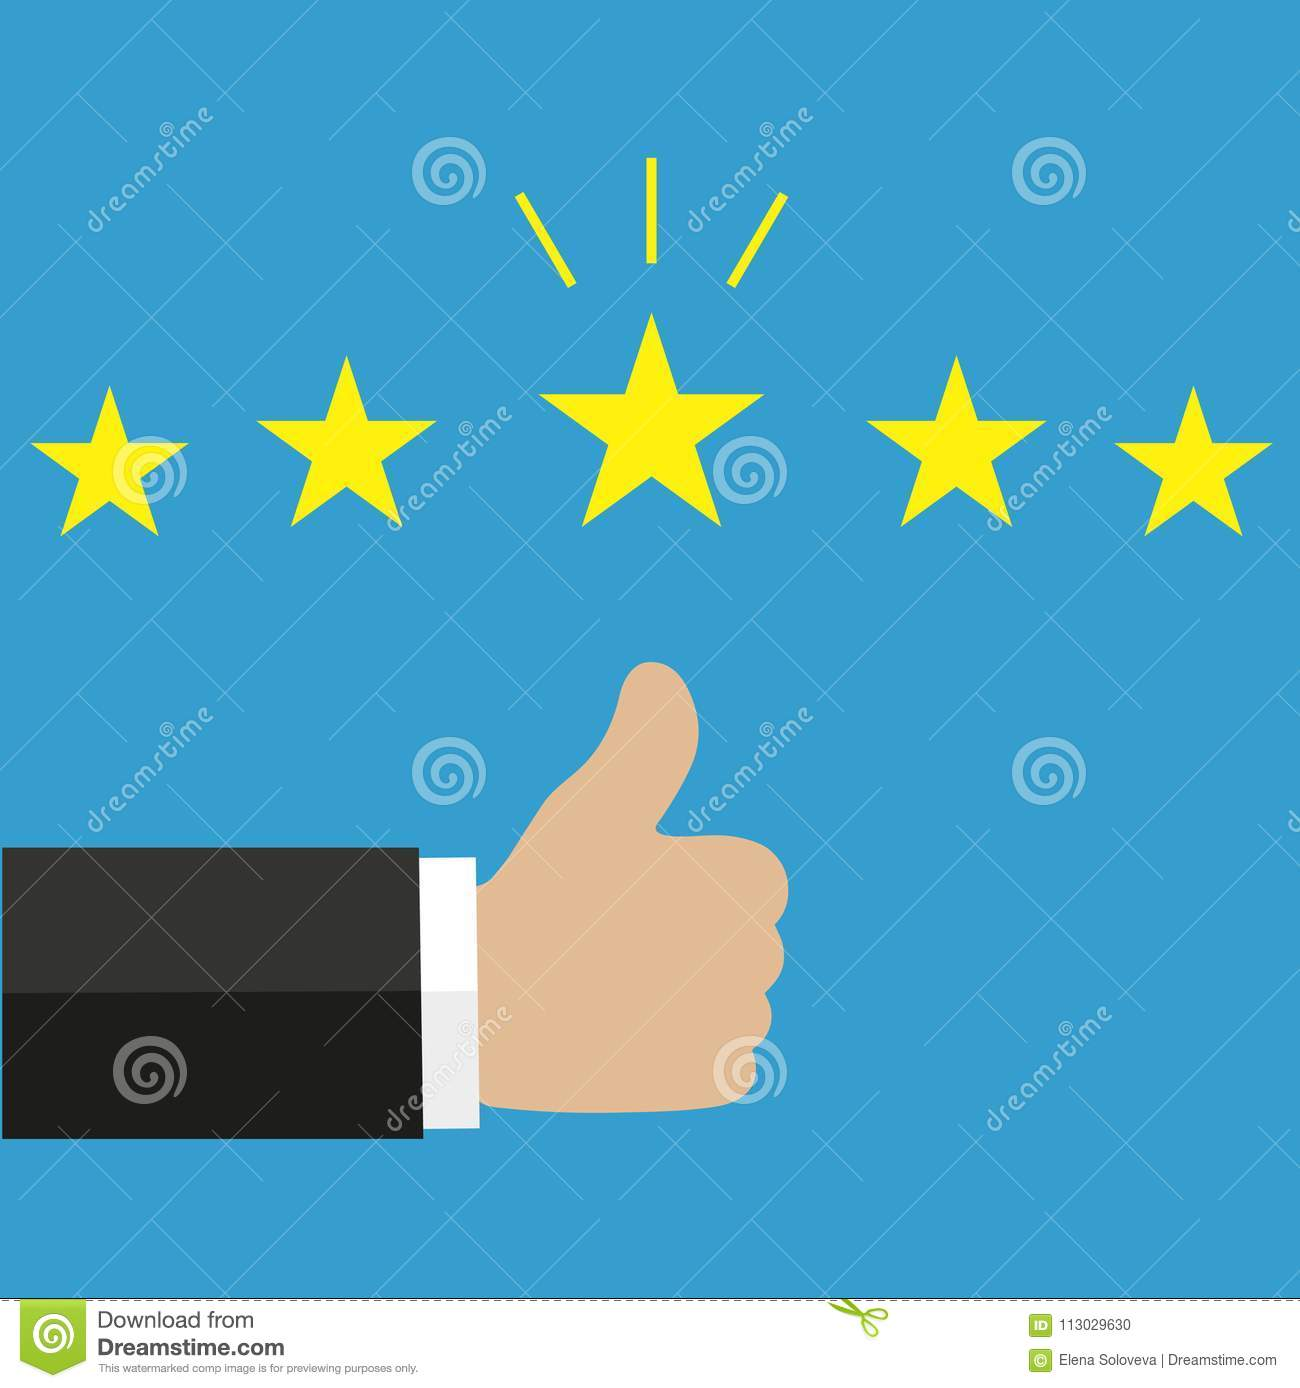 Illustration Thumb Up Pointing. Rating, Evaluation